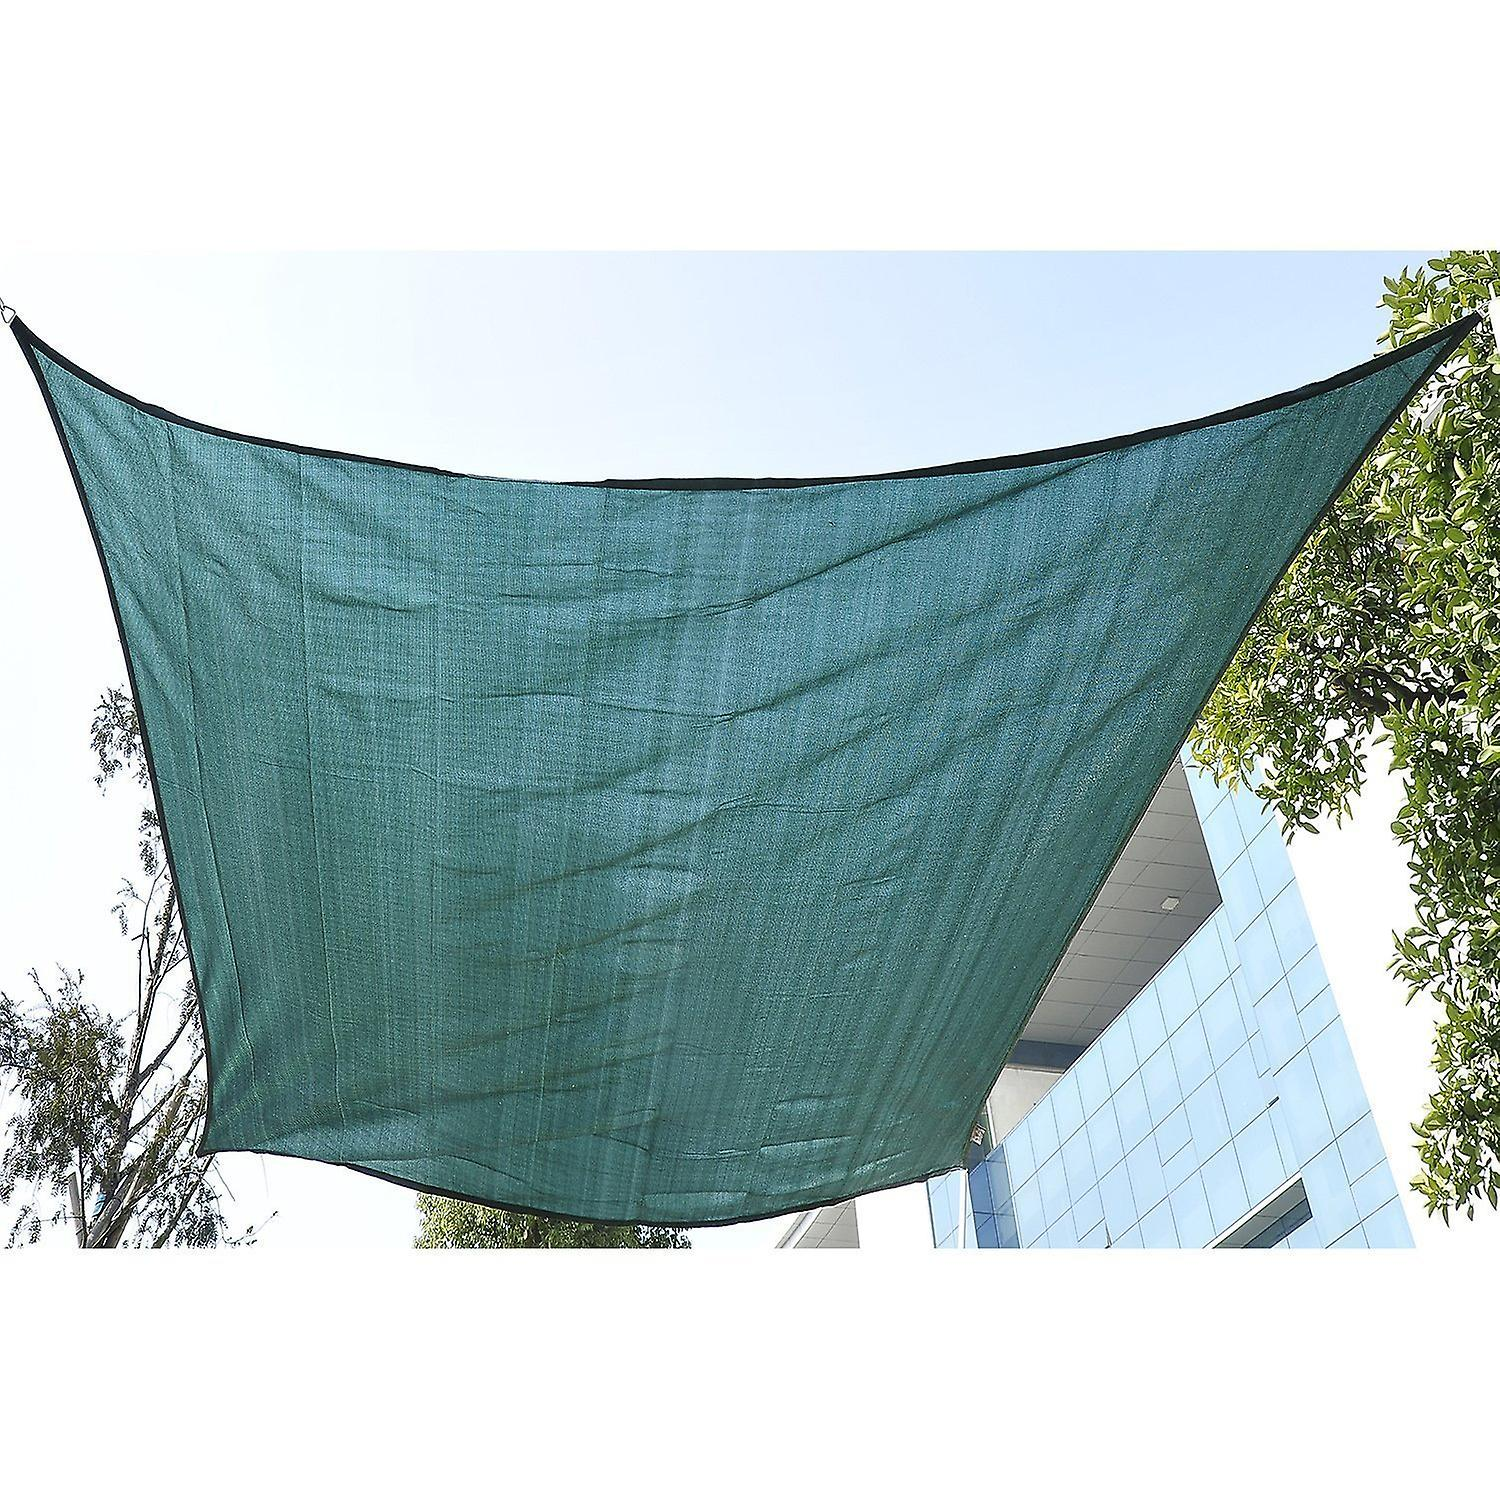 Outsunny 4m x 3m Rectangle Sail Shade Sun Canopy Patio Garden Shade Awning Free Ropes Green